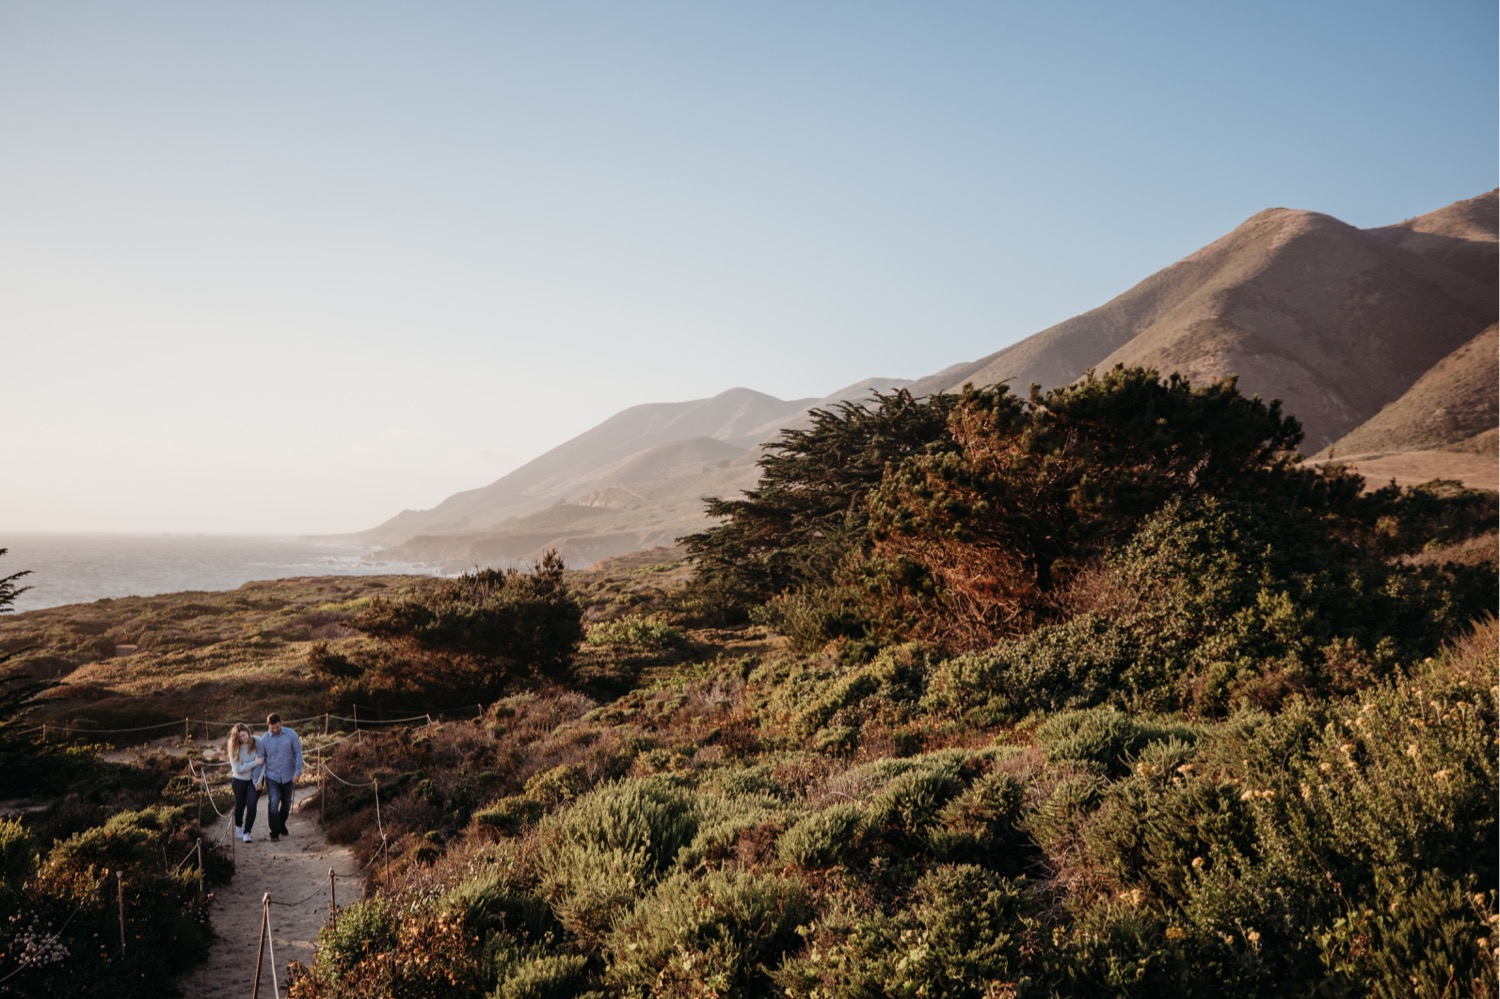 Couple walks along a trail at sunset in Big Sur, California on their engagement photoshoot.